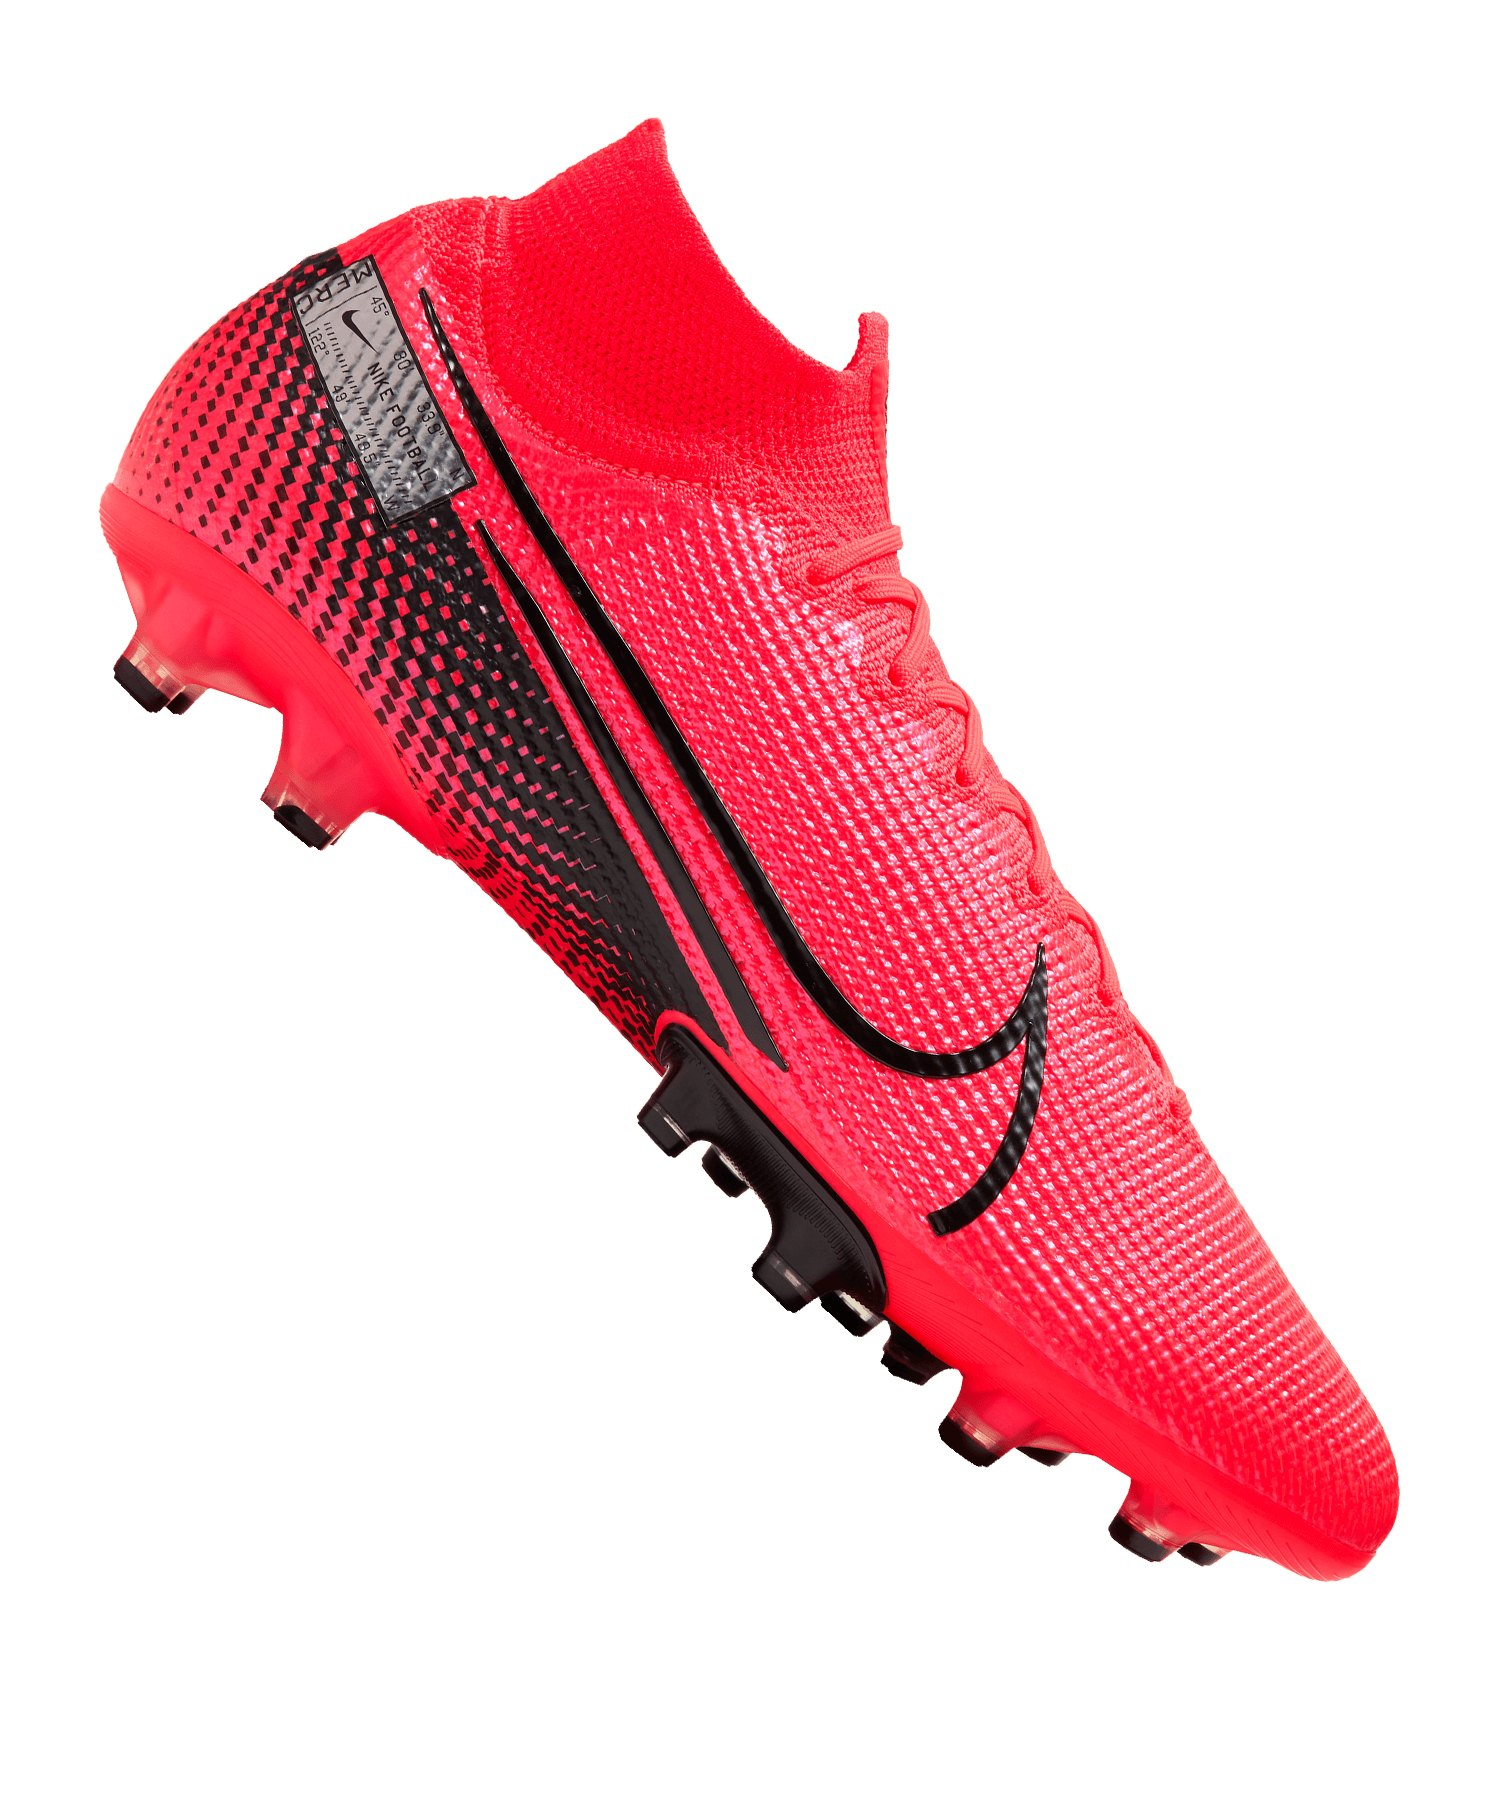 Nike Mercurial Superfly VII Elite AG-Pro Rot F606 - rot